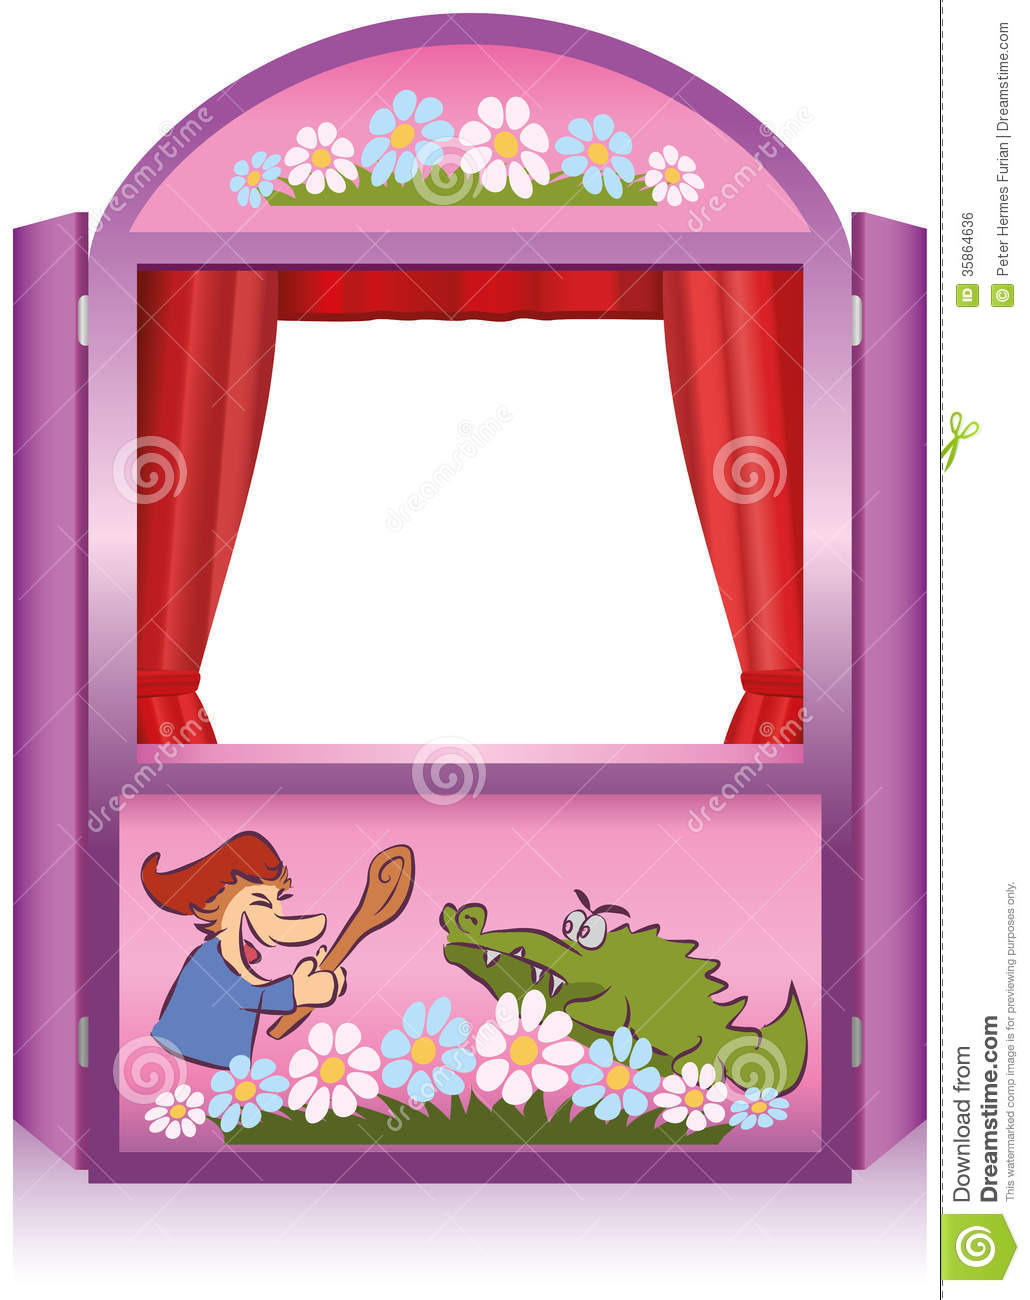 Punch And Judy Booth Royalty Free Stock Image.